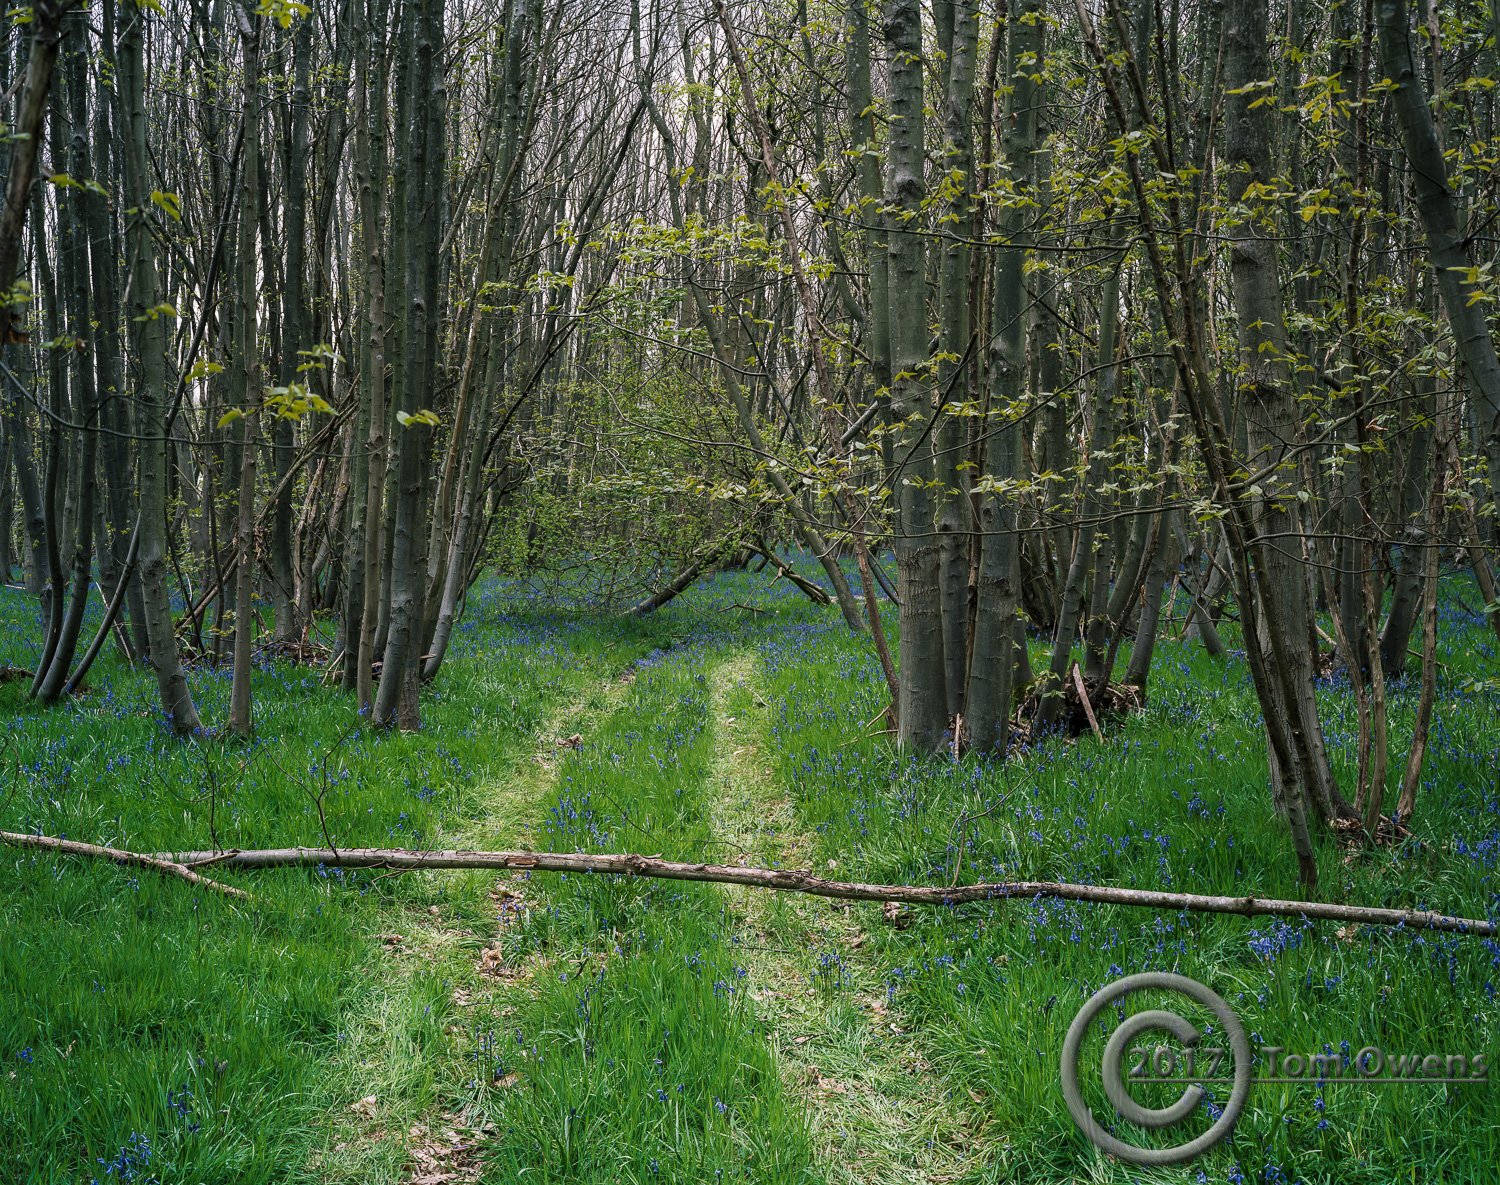 Fallen trea across path in bluebell wood